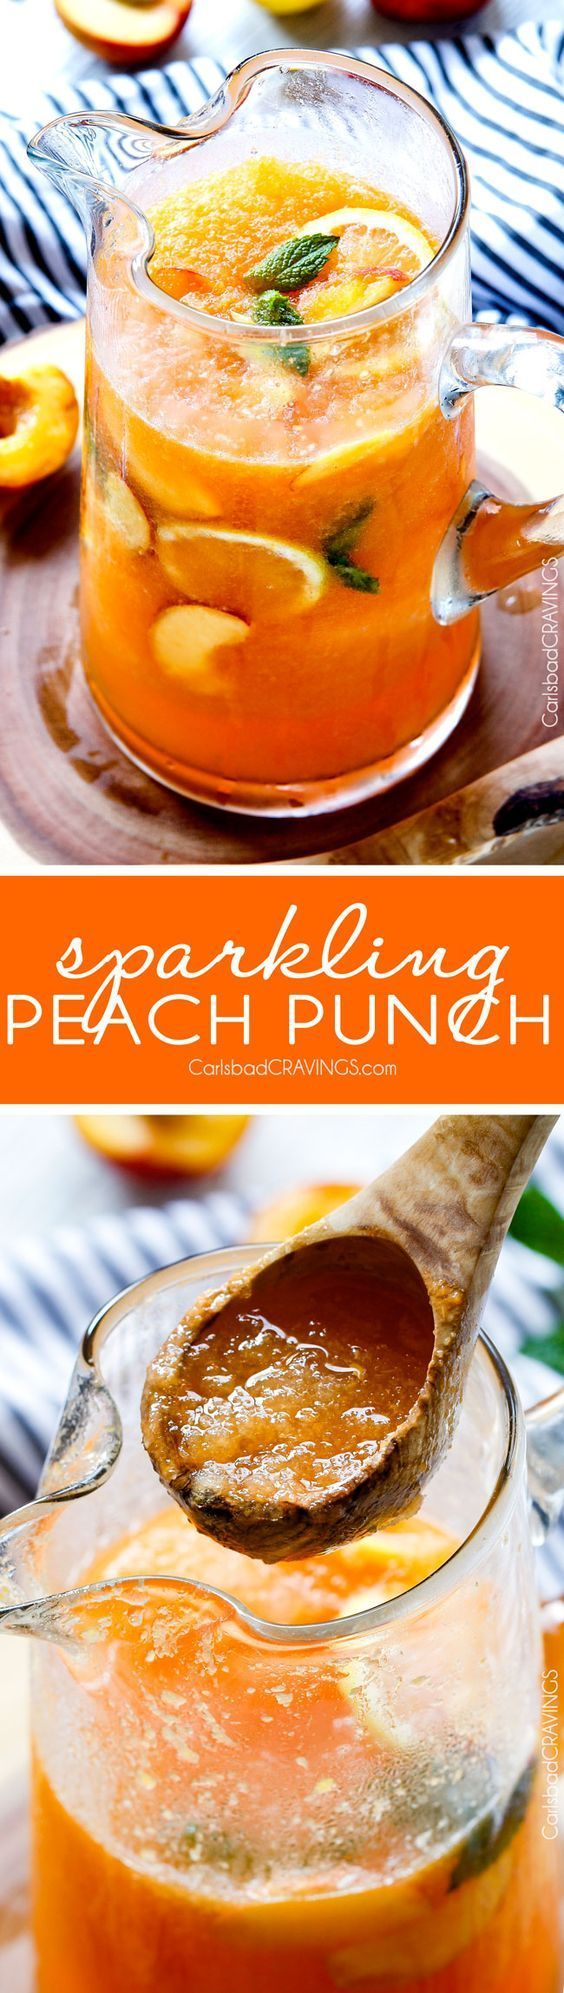 Sparkling Peach Punch (non alcoholic) Party Drink Recipe via Carlsbad Cravings - vibrant, refreshing, flavorful and the perfect amount of slush! I love making this for baby/bridal showers and potlucks and everyone else loves it too! The BEST Easy Non-Alcoholic Drinks Recipes - Creative Mocktails and Family Friendly, Alcohol-Free, Big Batch Party Beverages for a Crowd! #mocktails #virgindrinks #alcoholfreedrinks #nonalcoholicdrinks #familyfriendlydrinks #partypunch #partydrinks #newyearseve #partydrinkrecipes